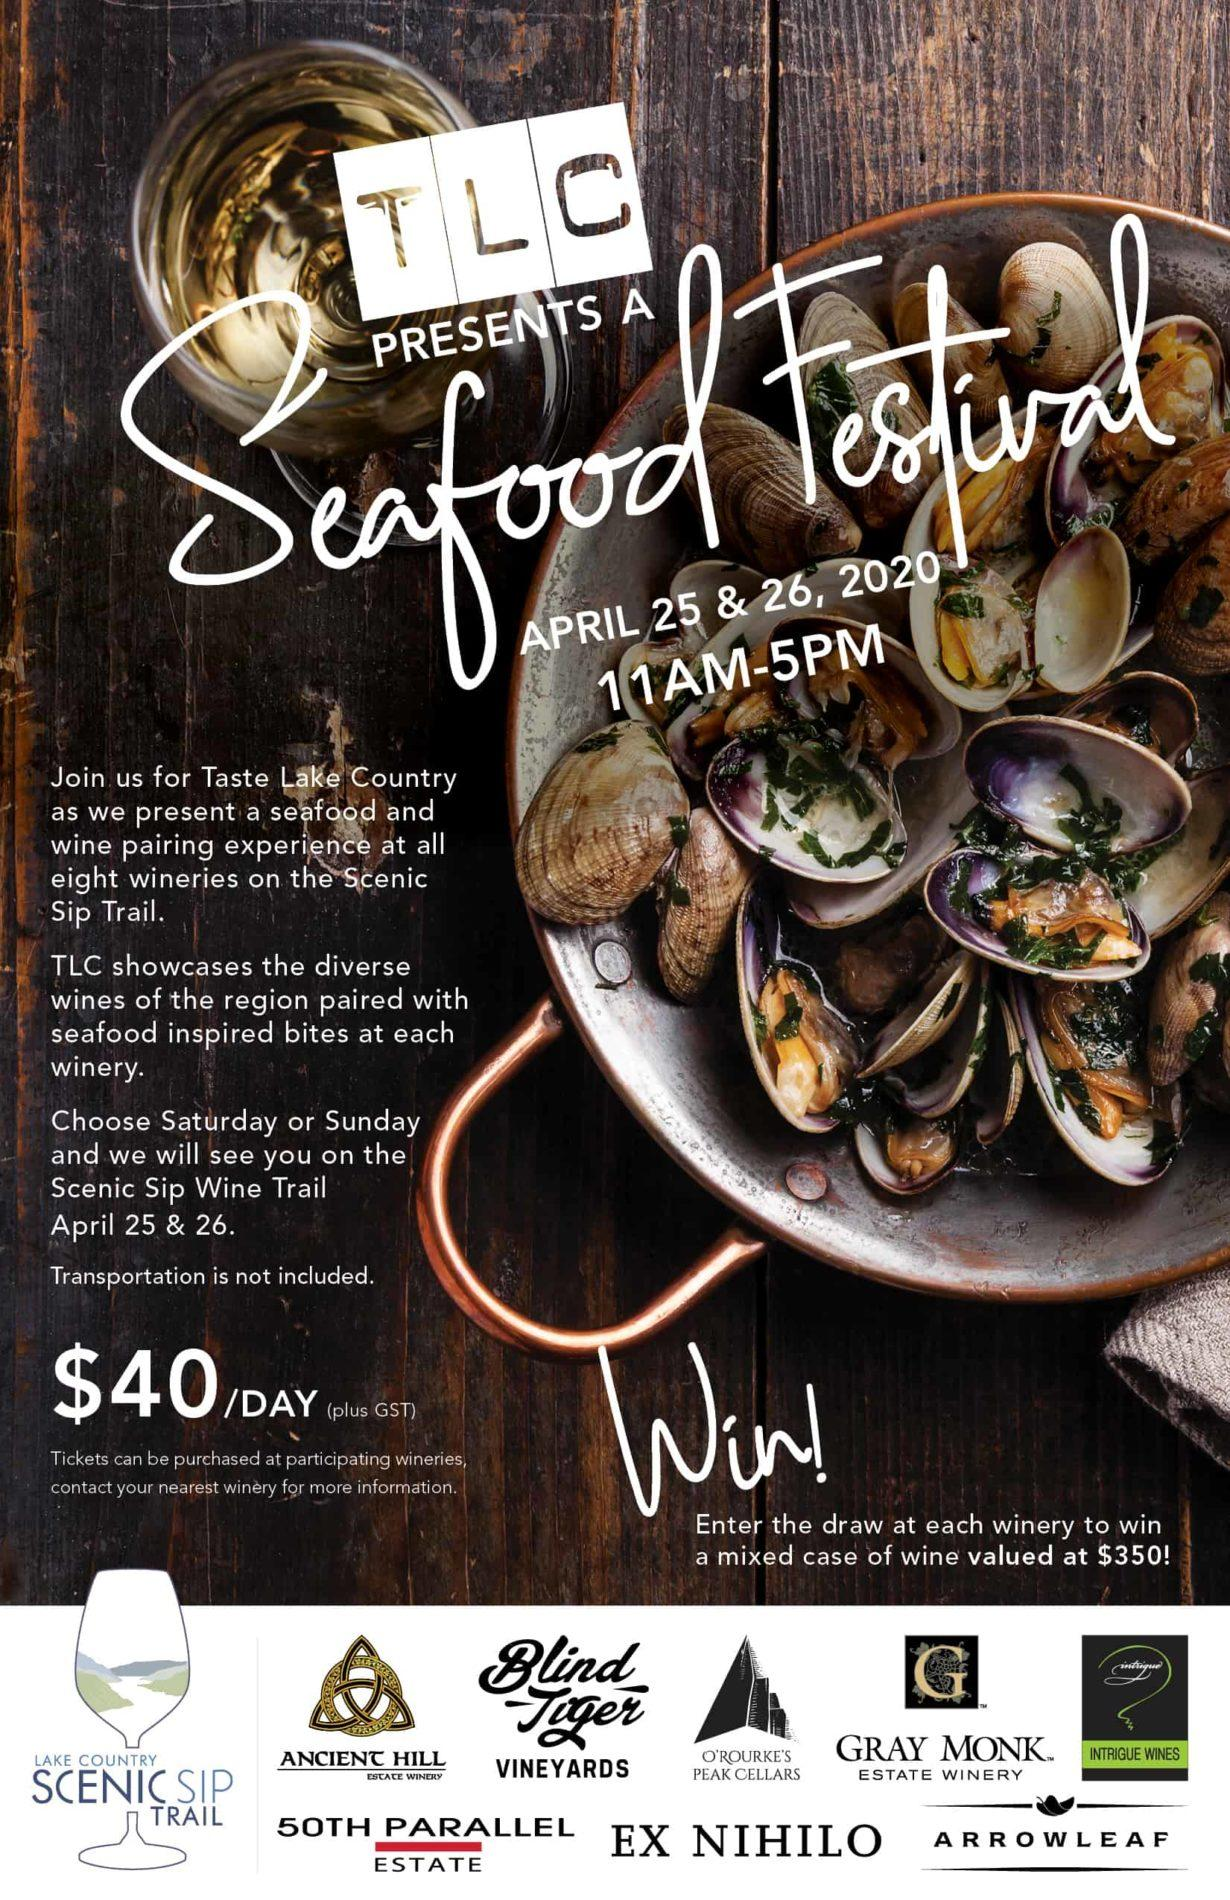 ScenicSip TLC SeafoodFestival Poster - Scenic Sip Trail PRESENTS Taste Lake Country Seafood Festival